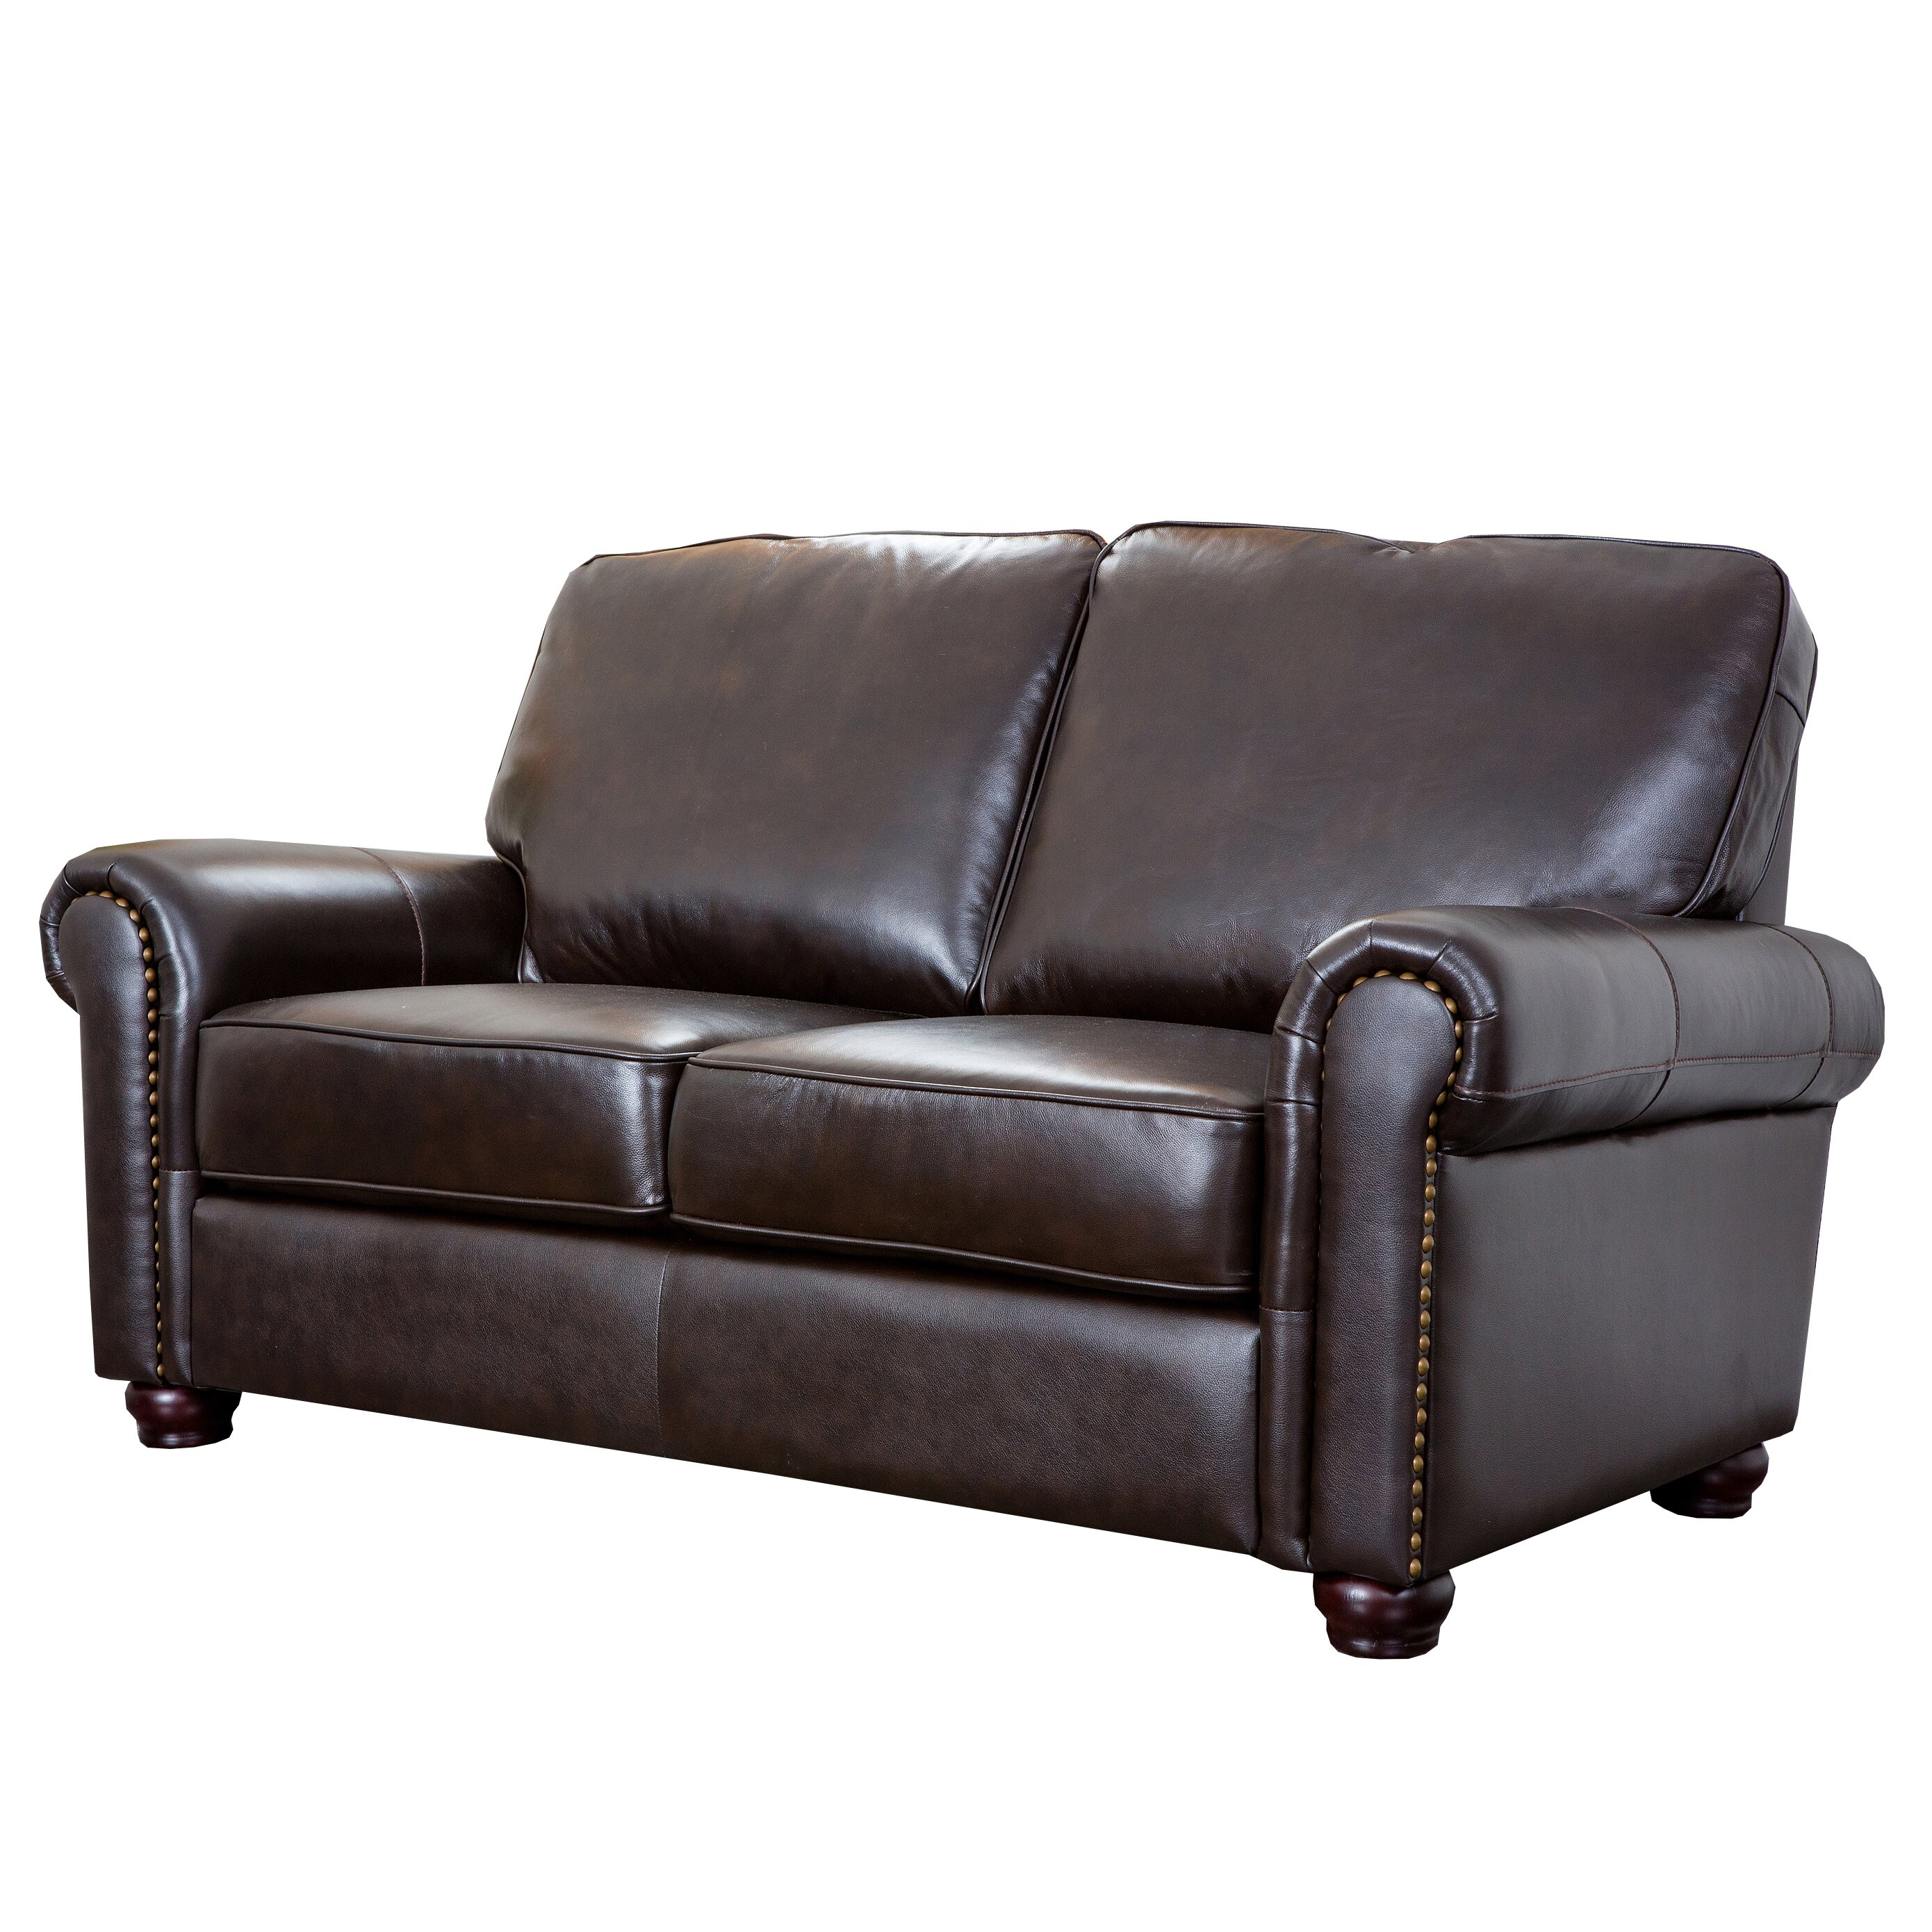 Darby Home Co Coggins Leather Loveseat Reviews Wayfair